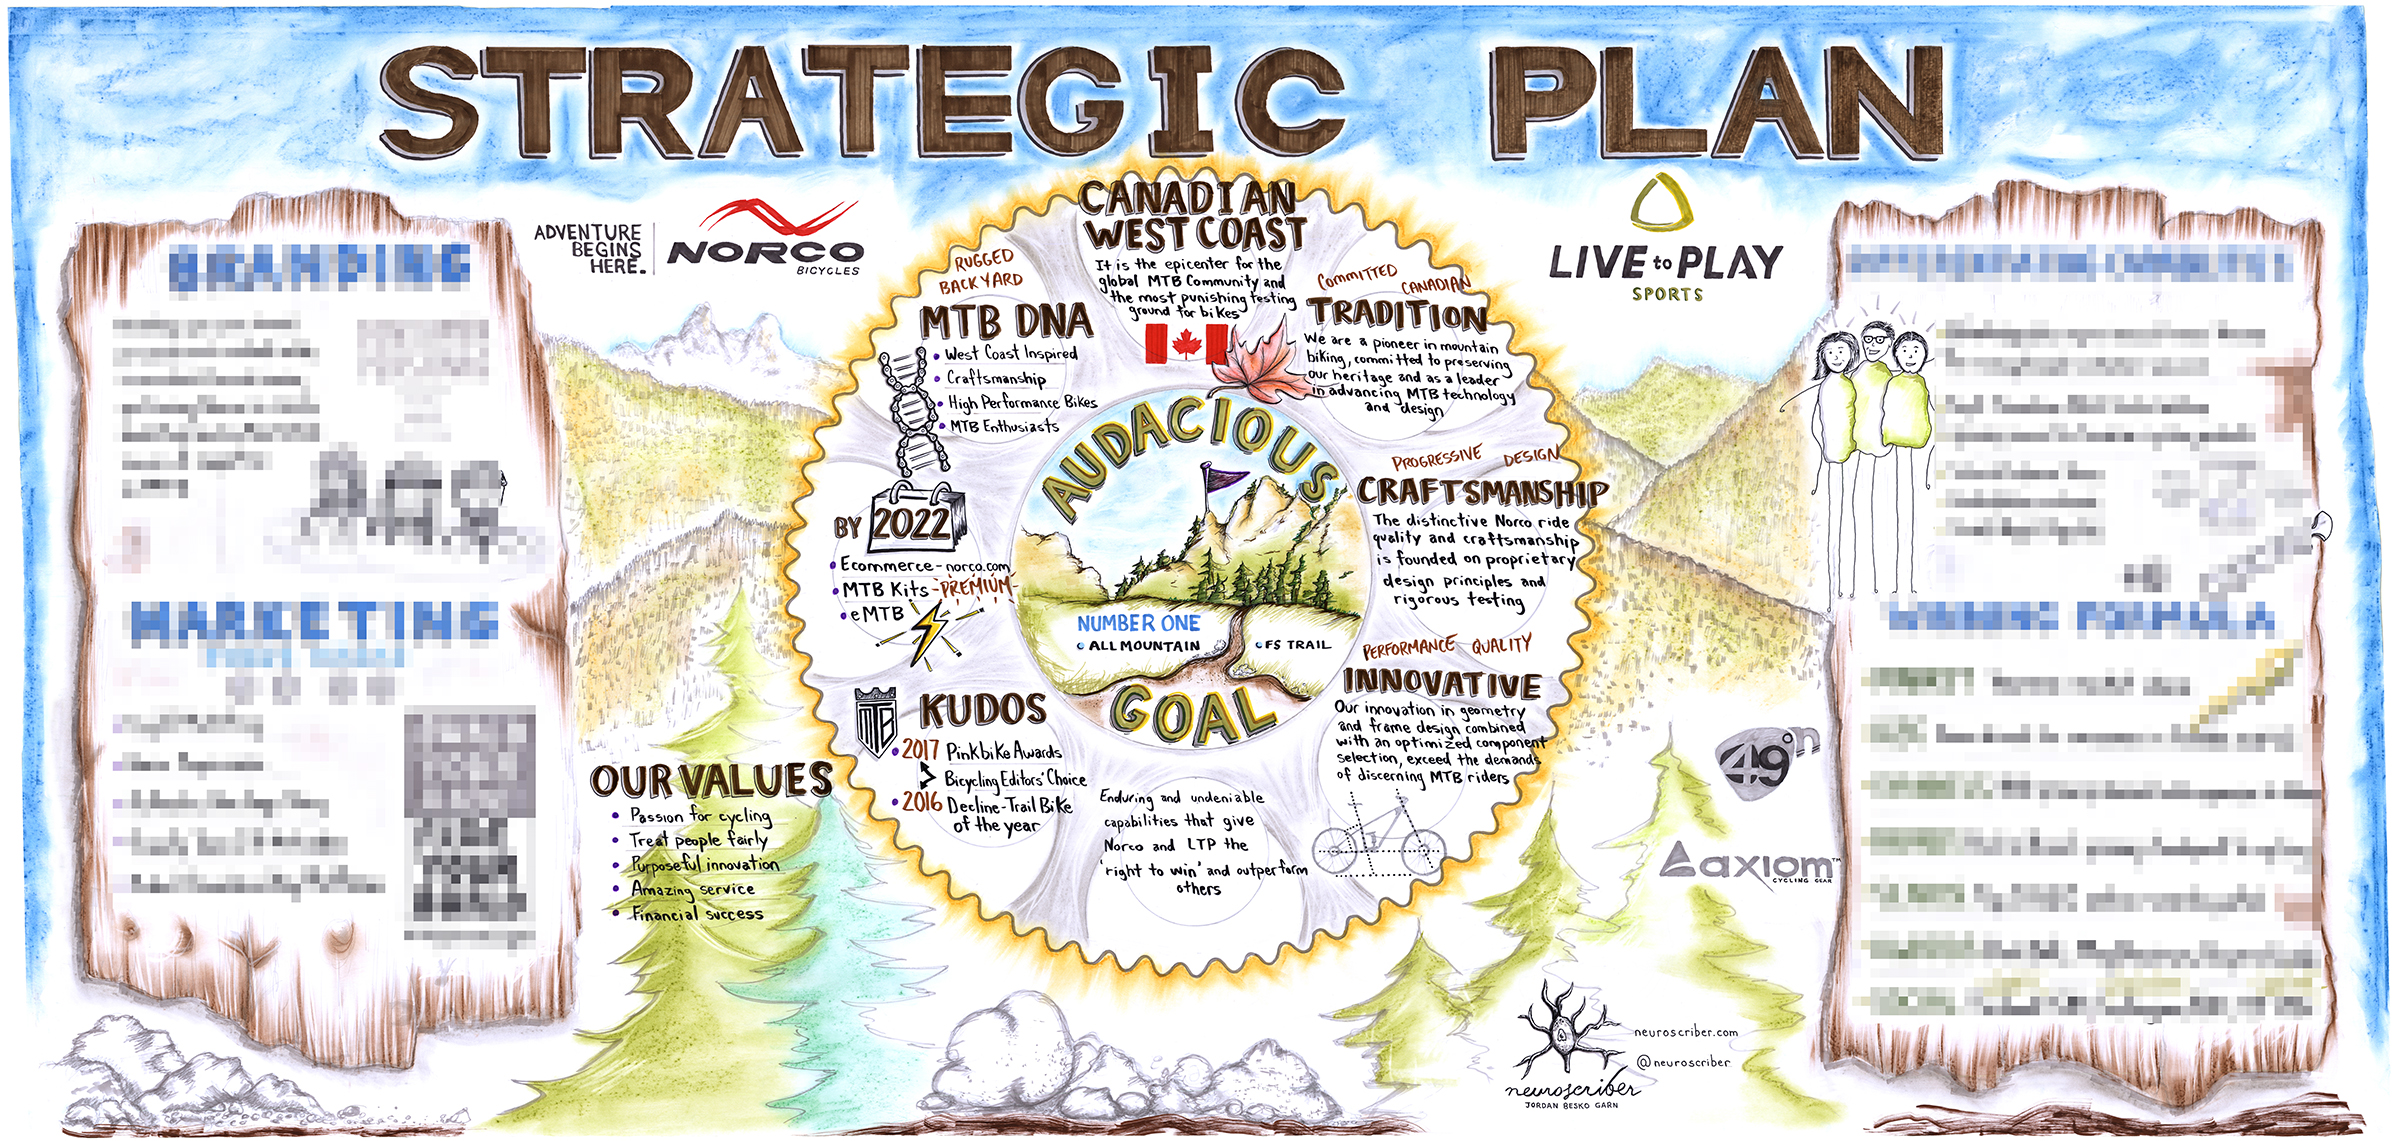 STRATEGIC PLAN - NORCO / LIVE TO PLAY SPORTS - I am excited to share a large format chart of Norco Bicycles and Live to Play Sports 5-year strategic plan. They approached me back in October 2018 to create the studio piece. The end result was to have an easy to visualize format of their goals, vision, and capabilities.I synthesized the content ranging from a multi-page PowerPoint and branding book. The final illustration compliments Norco Bicycles and Live to Play Sports culture.Below are a few up close, as well as, in progress photographs of the creative process. NOTE: due to confidentiality some sections are pixelated.Format: 4' x 8' presentation paper